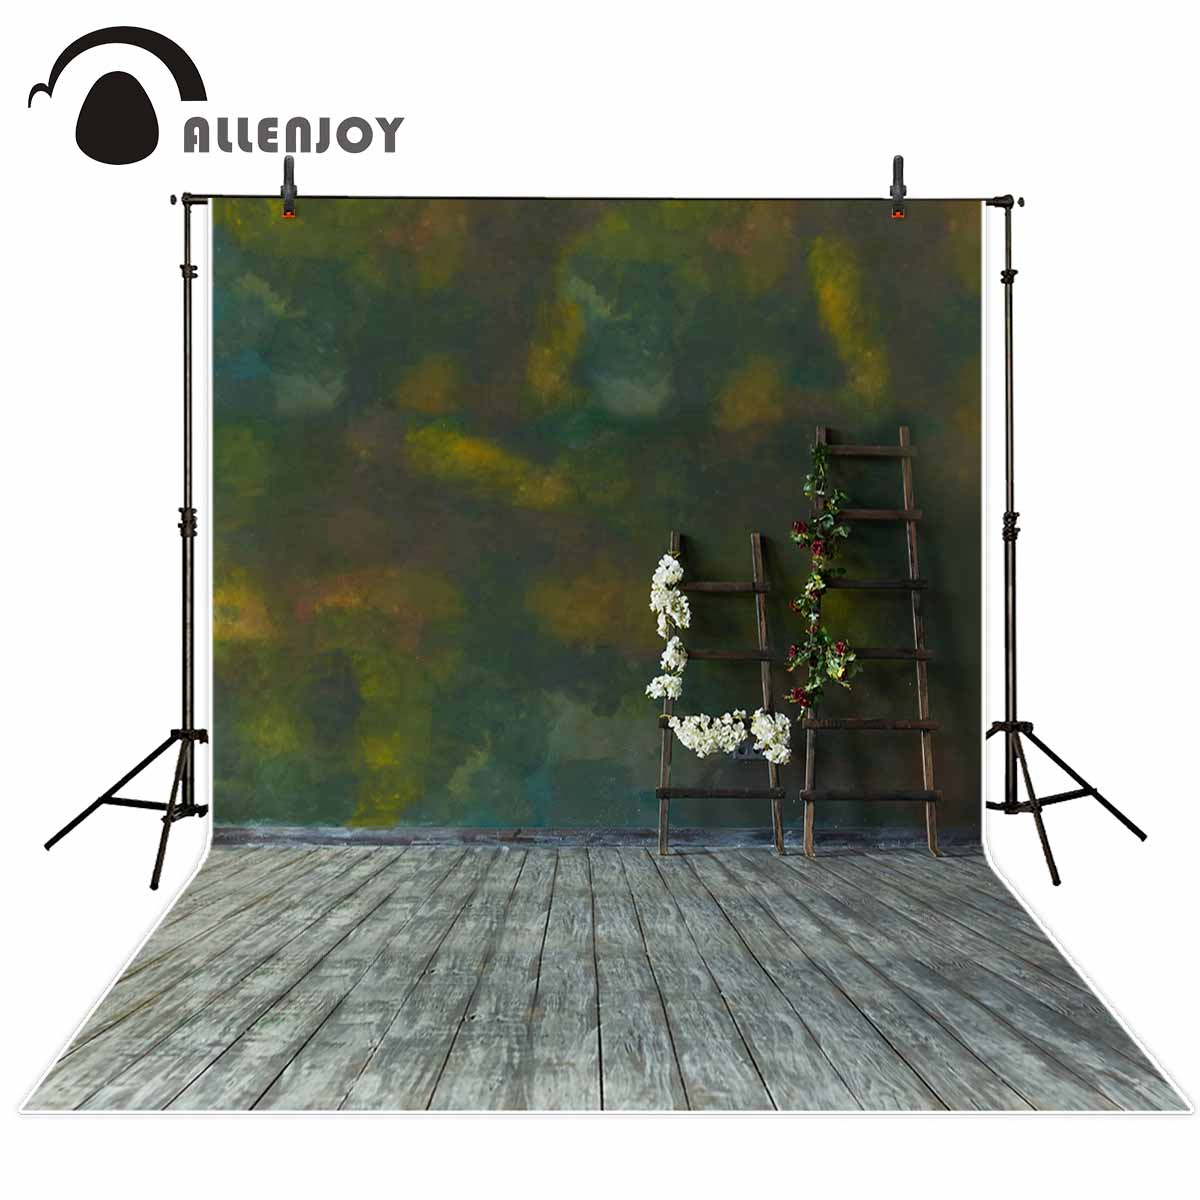 Allenjoy Ladder green wall wooden floor for a photo shoot background cloths photography vinyl photo booth background vinyl allenjoy christmas village decoration house amusement park foto for a photo shoot photographing background photography